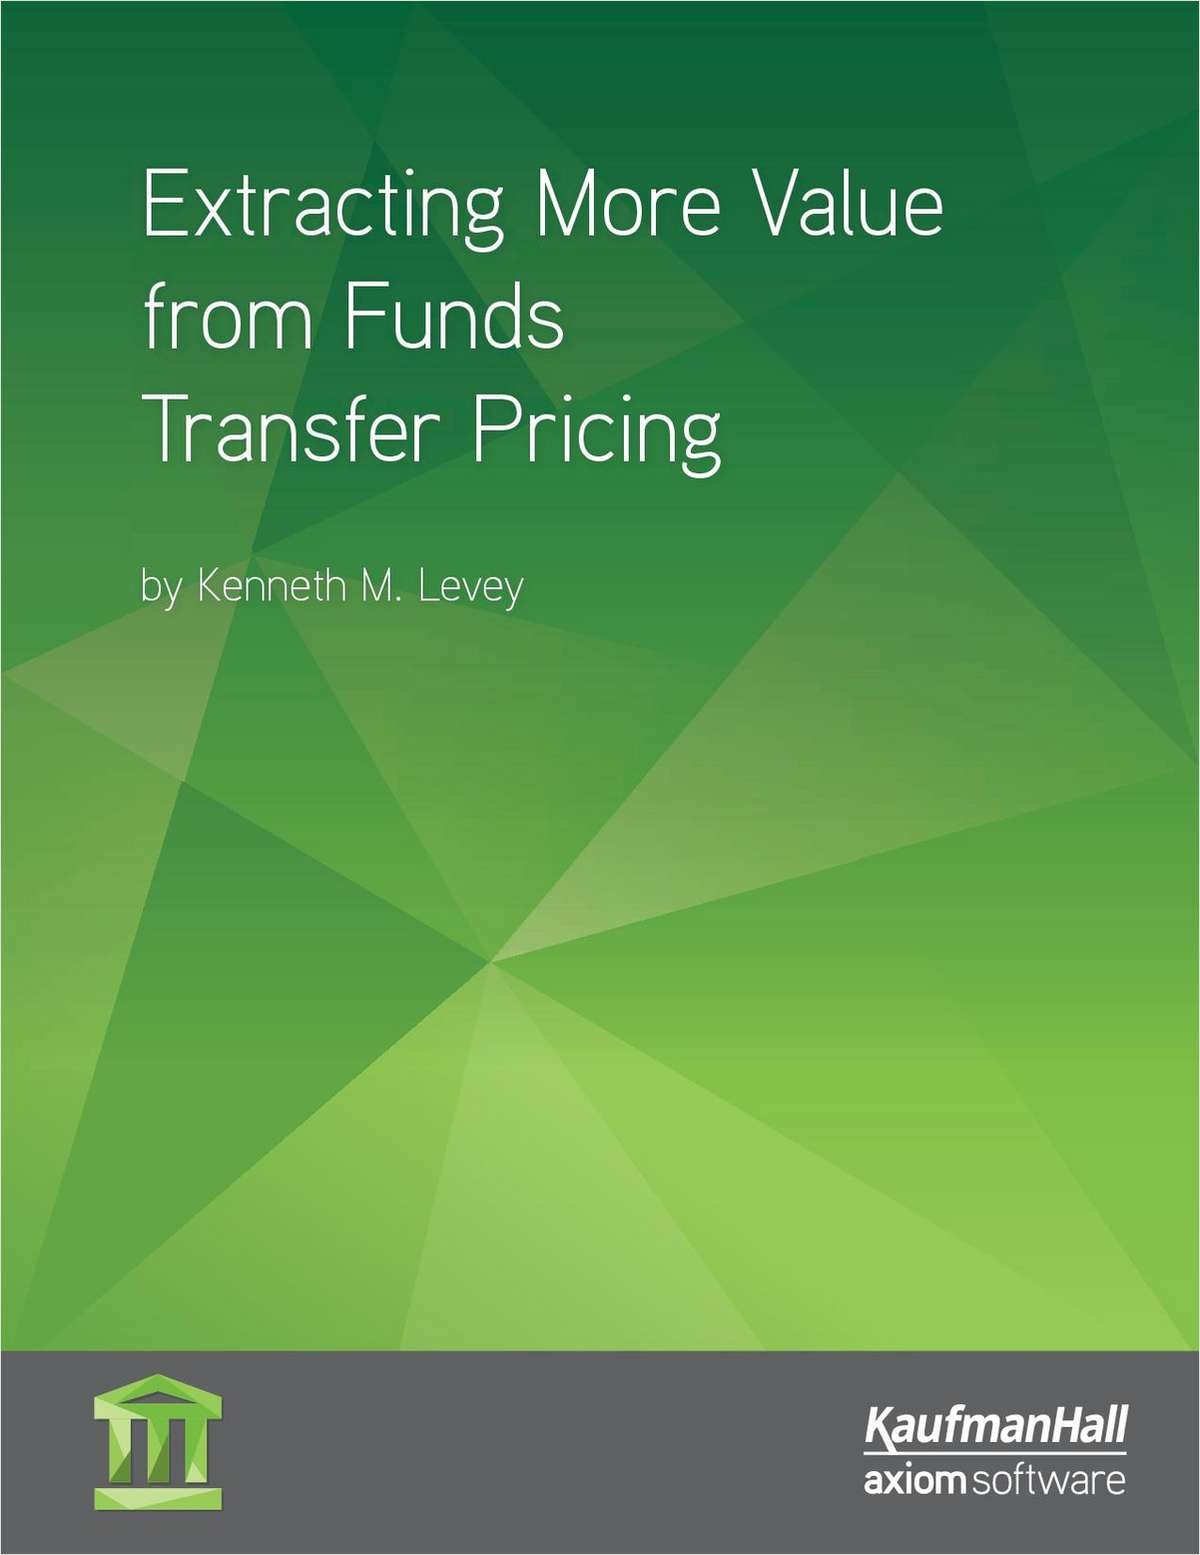 Extracting More Value from Funds Transfer Pricing